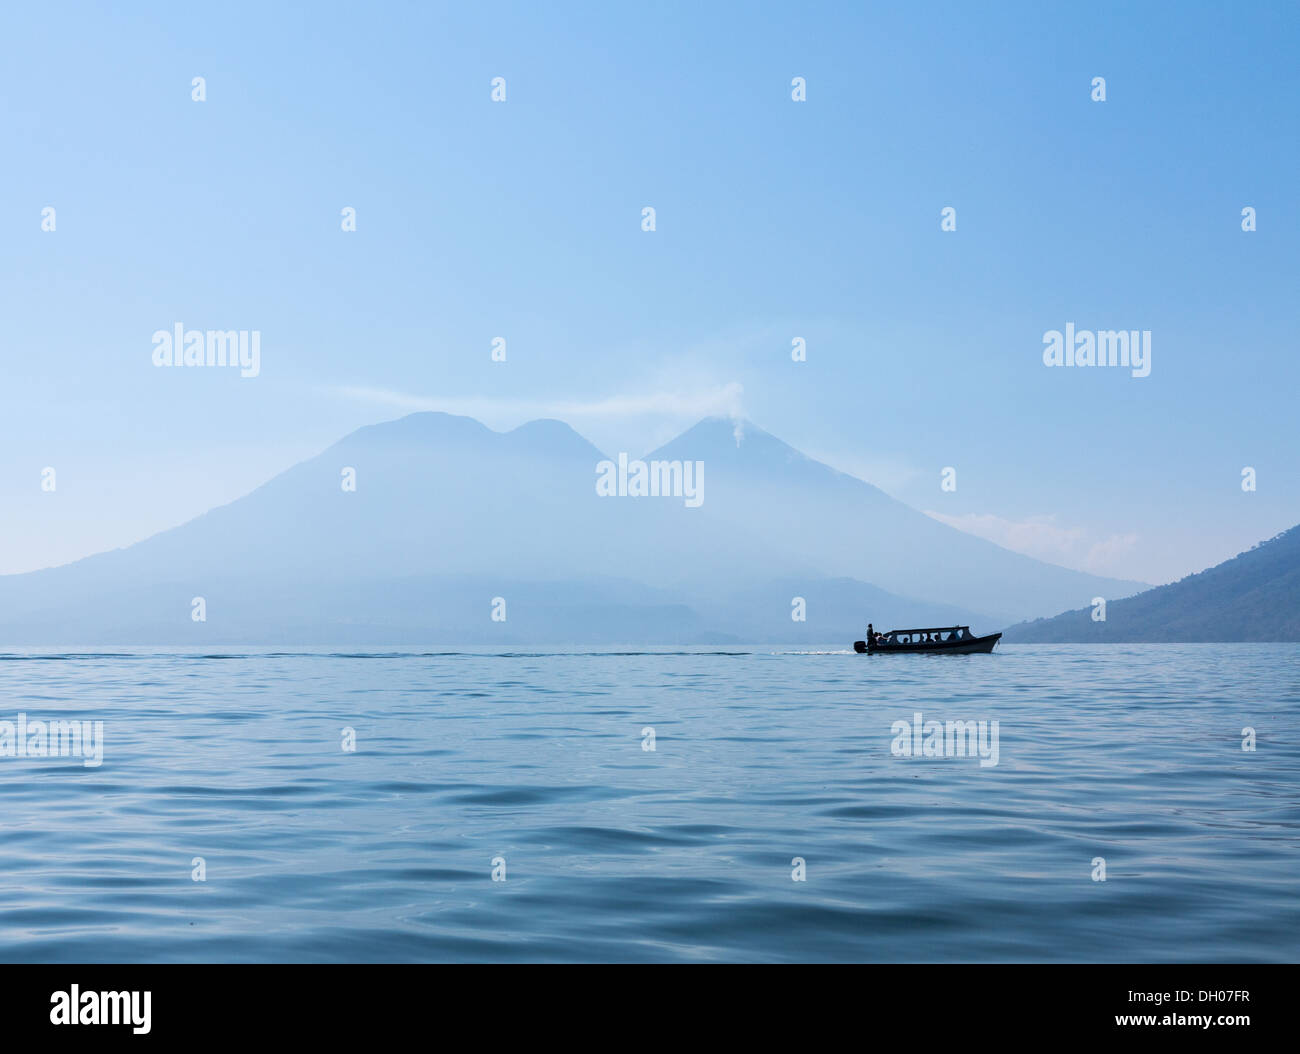 Sunrise at Lake Atitlan in Guatemala - formed from volcano crater. With tourist boat or cruiser in the distance - Stock Image